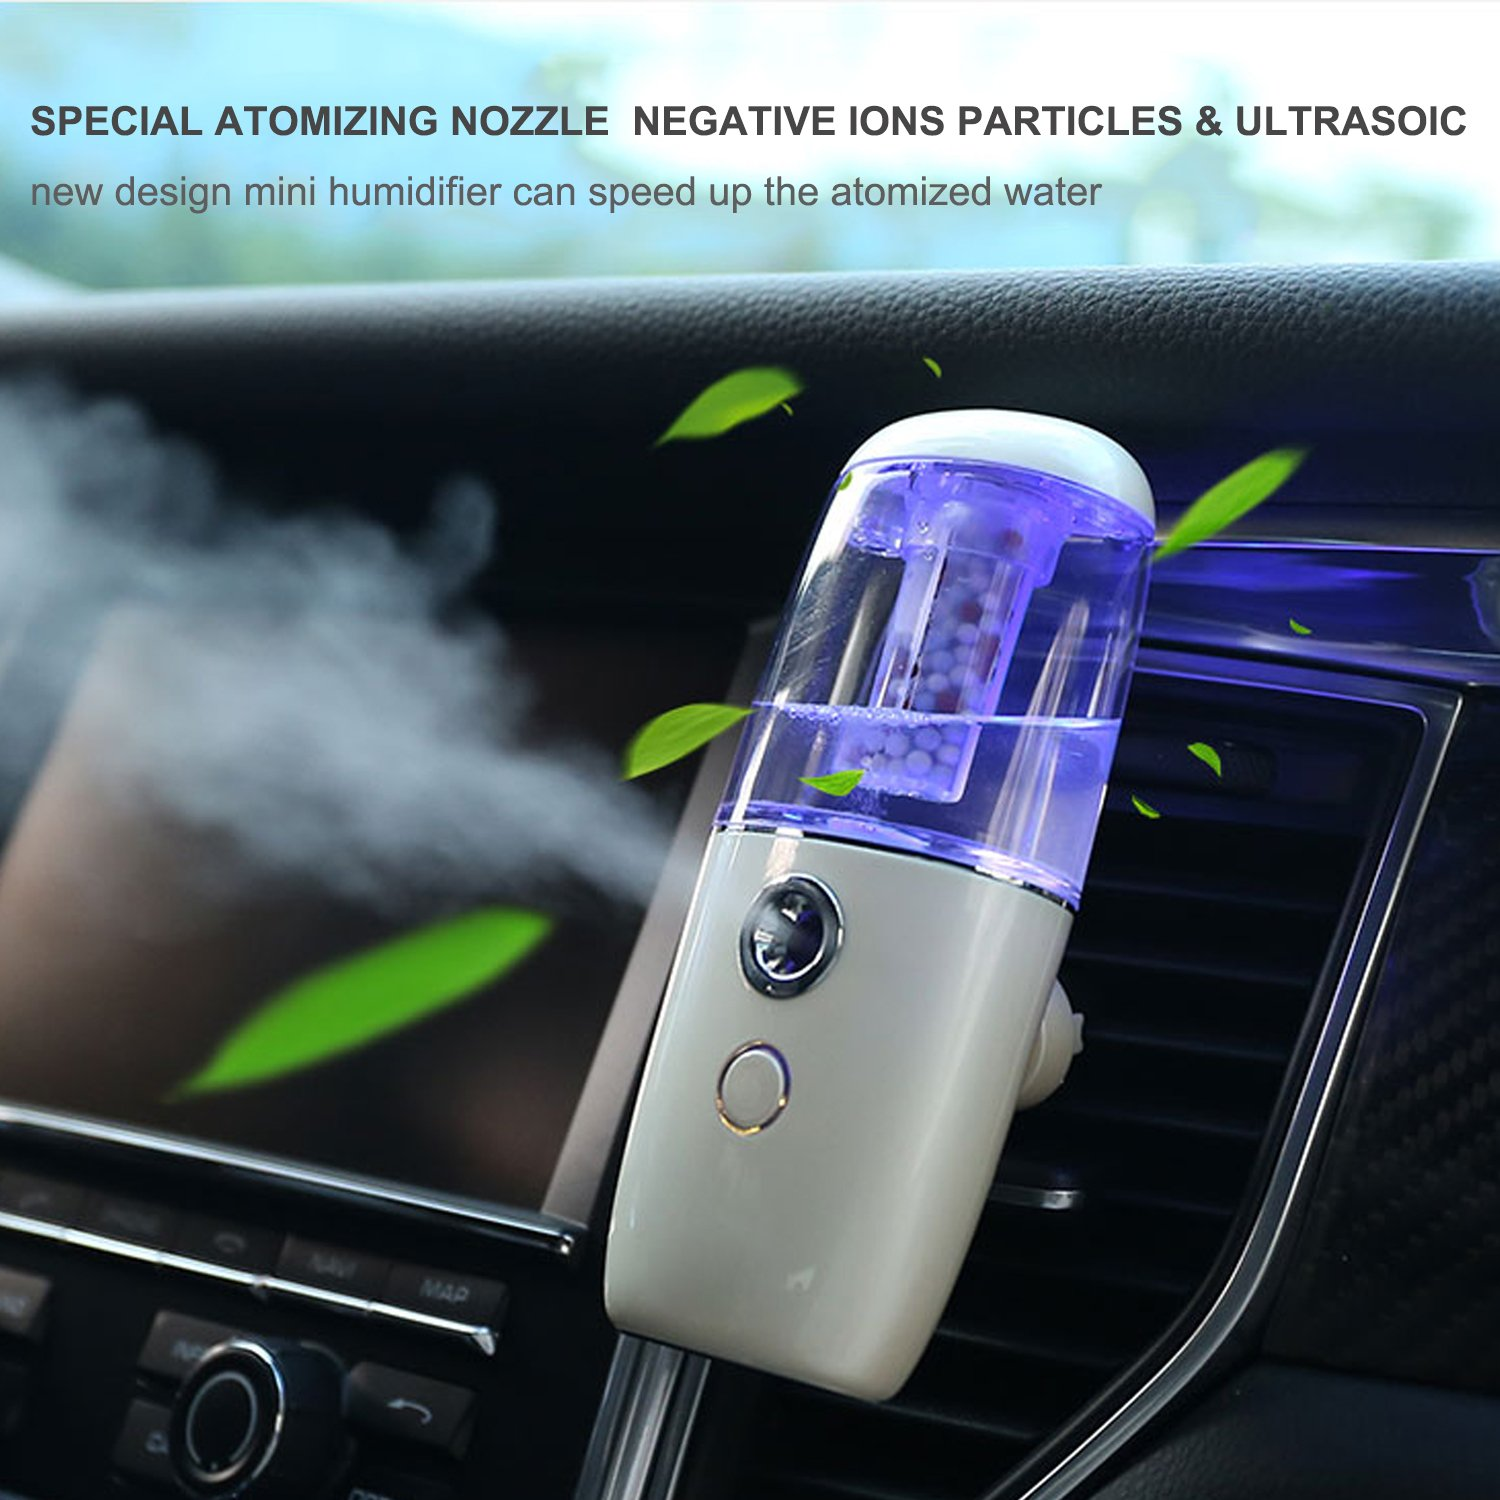 JMKMGL Portable USB Air Humidifier, mini ultrasonic humidifier with Clip for Car air outlet,Essential Aroma Oil Diffusers With Negative Ions Particles,White